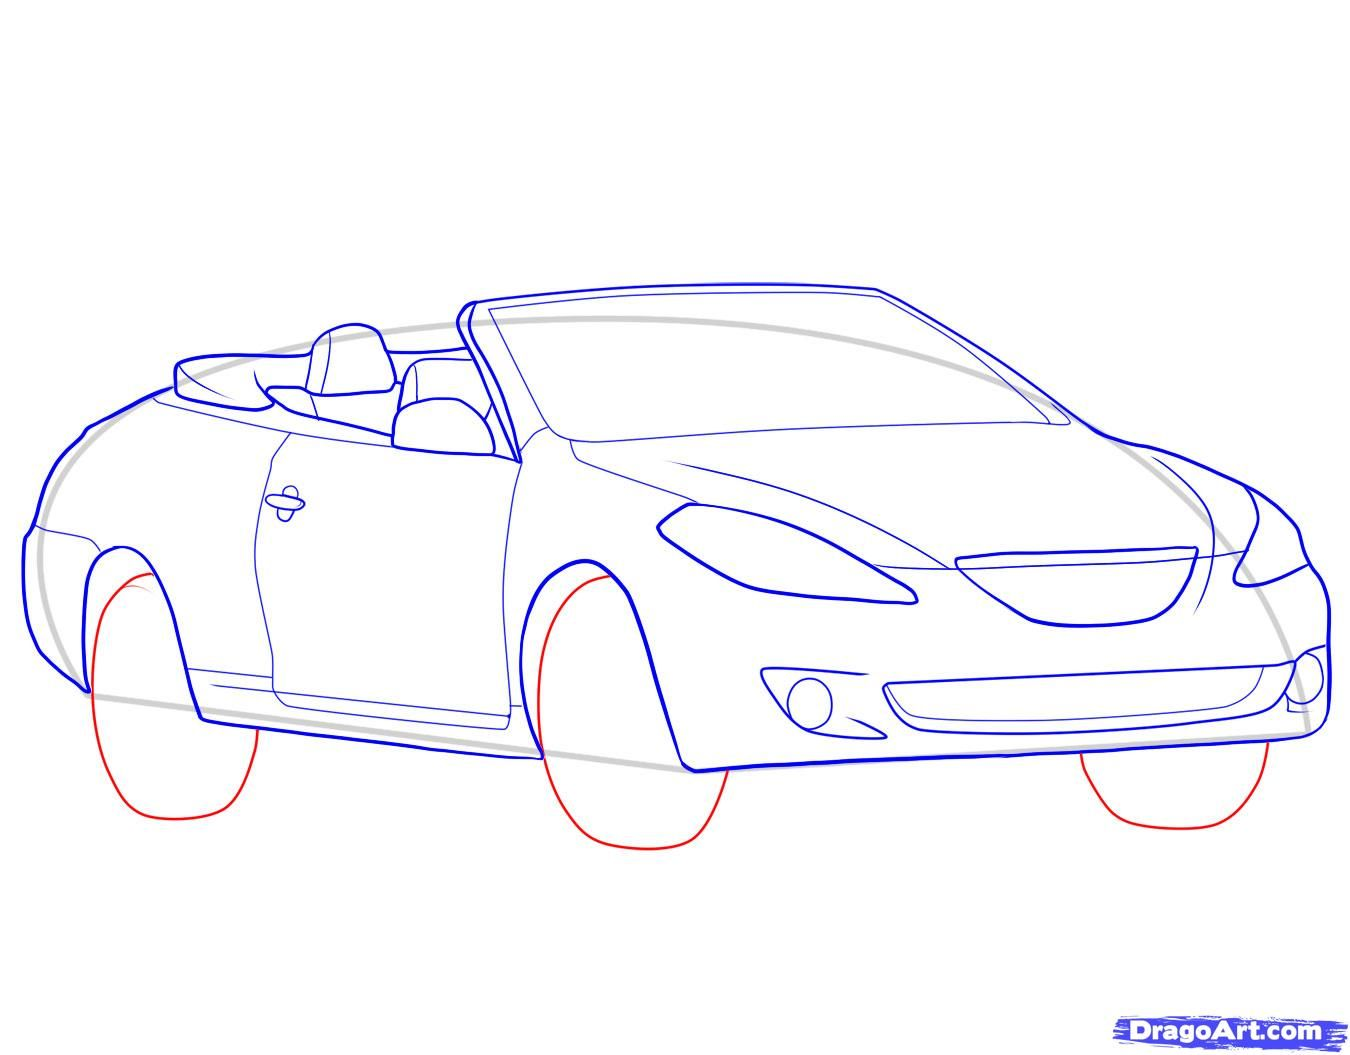 How to draw the Camaro car step by step 8